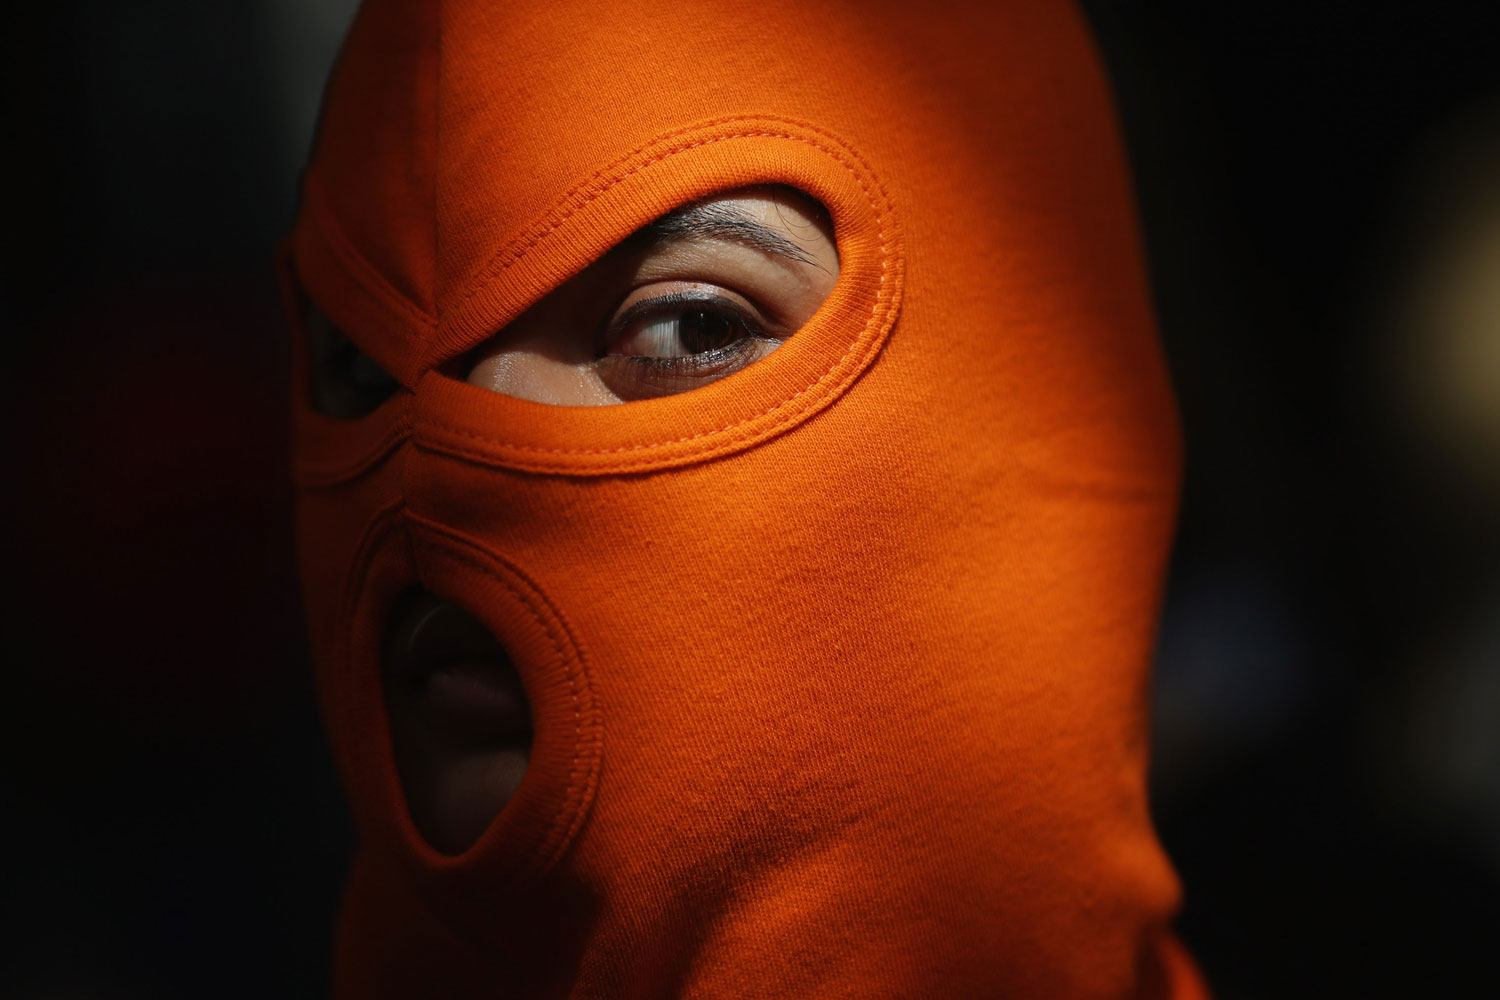 August 17, 2012. A person wears an orange mask as a demonstration by supporters of the jailed feminist punk band 'Pussy Riot' takes place outside the Russian Embassy on in London, England. The three women who staged an anti-Kremlin protest in a church in February, were found guilty of hooliganism motivated by religious hatred, and could face a three-year jail sentence.